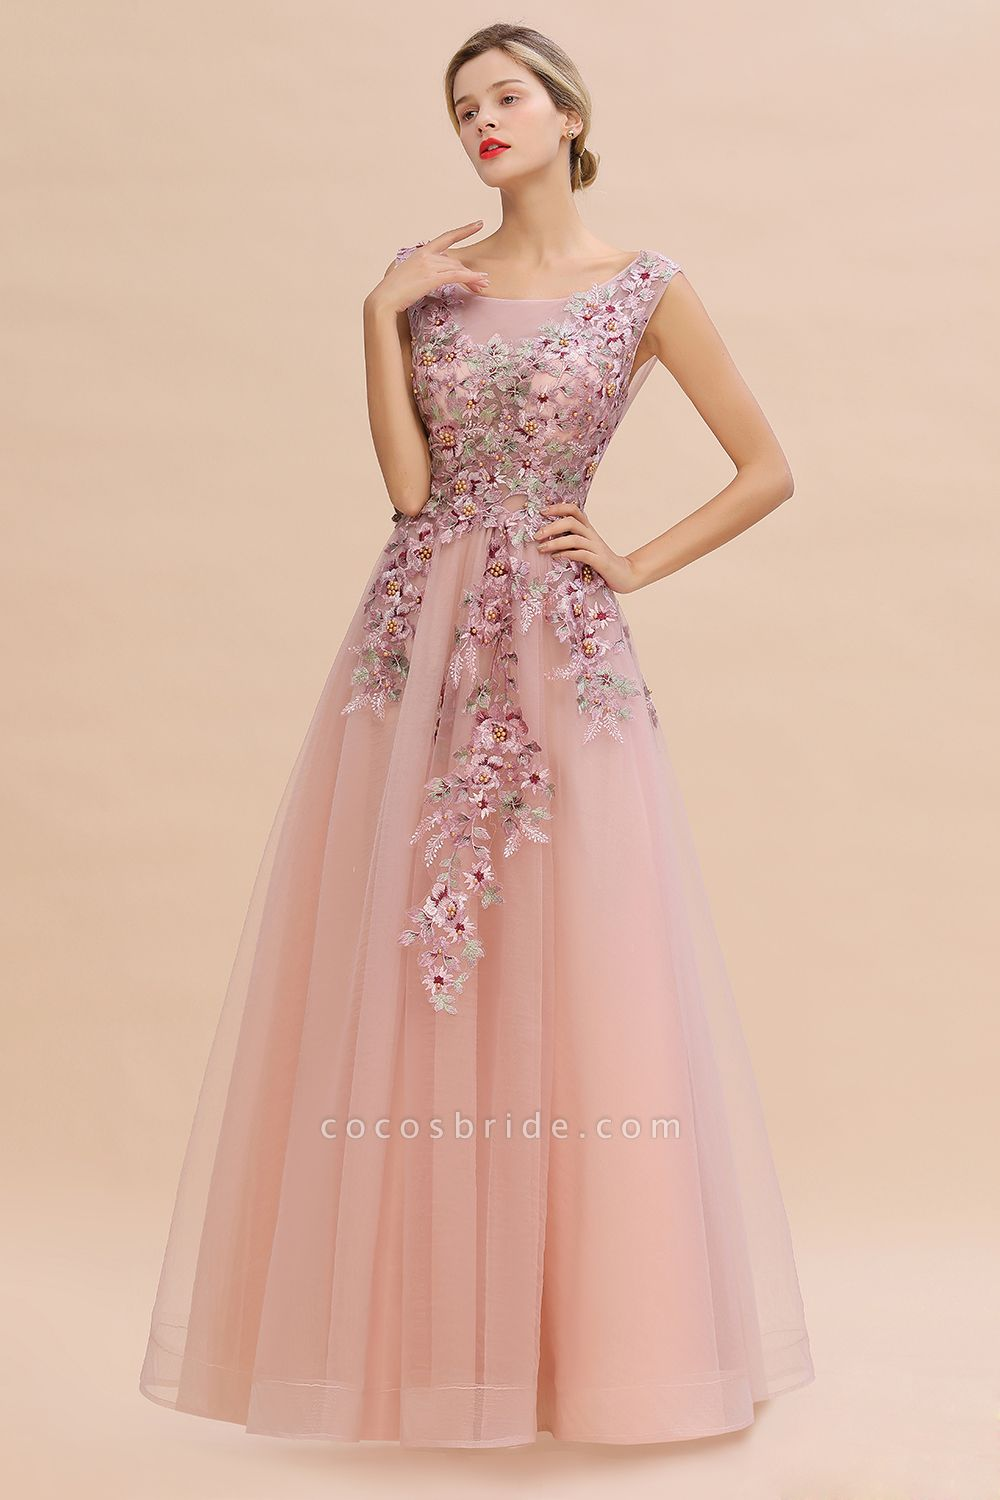 Gorgeous Dusty Pink Tulle Long Lace Appliques Prom Dress